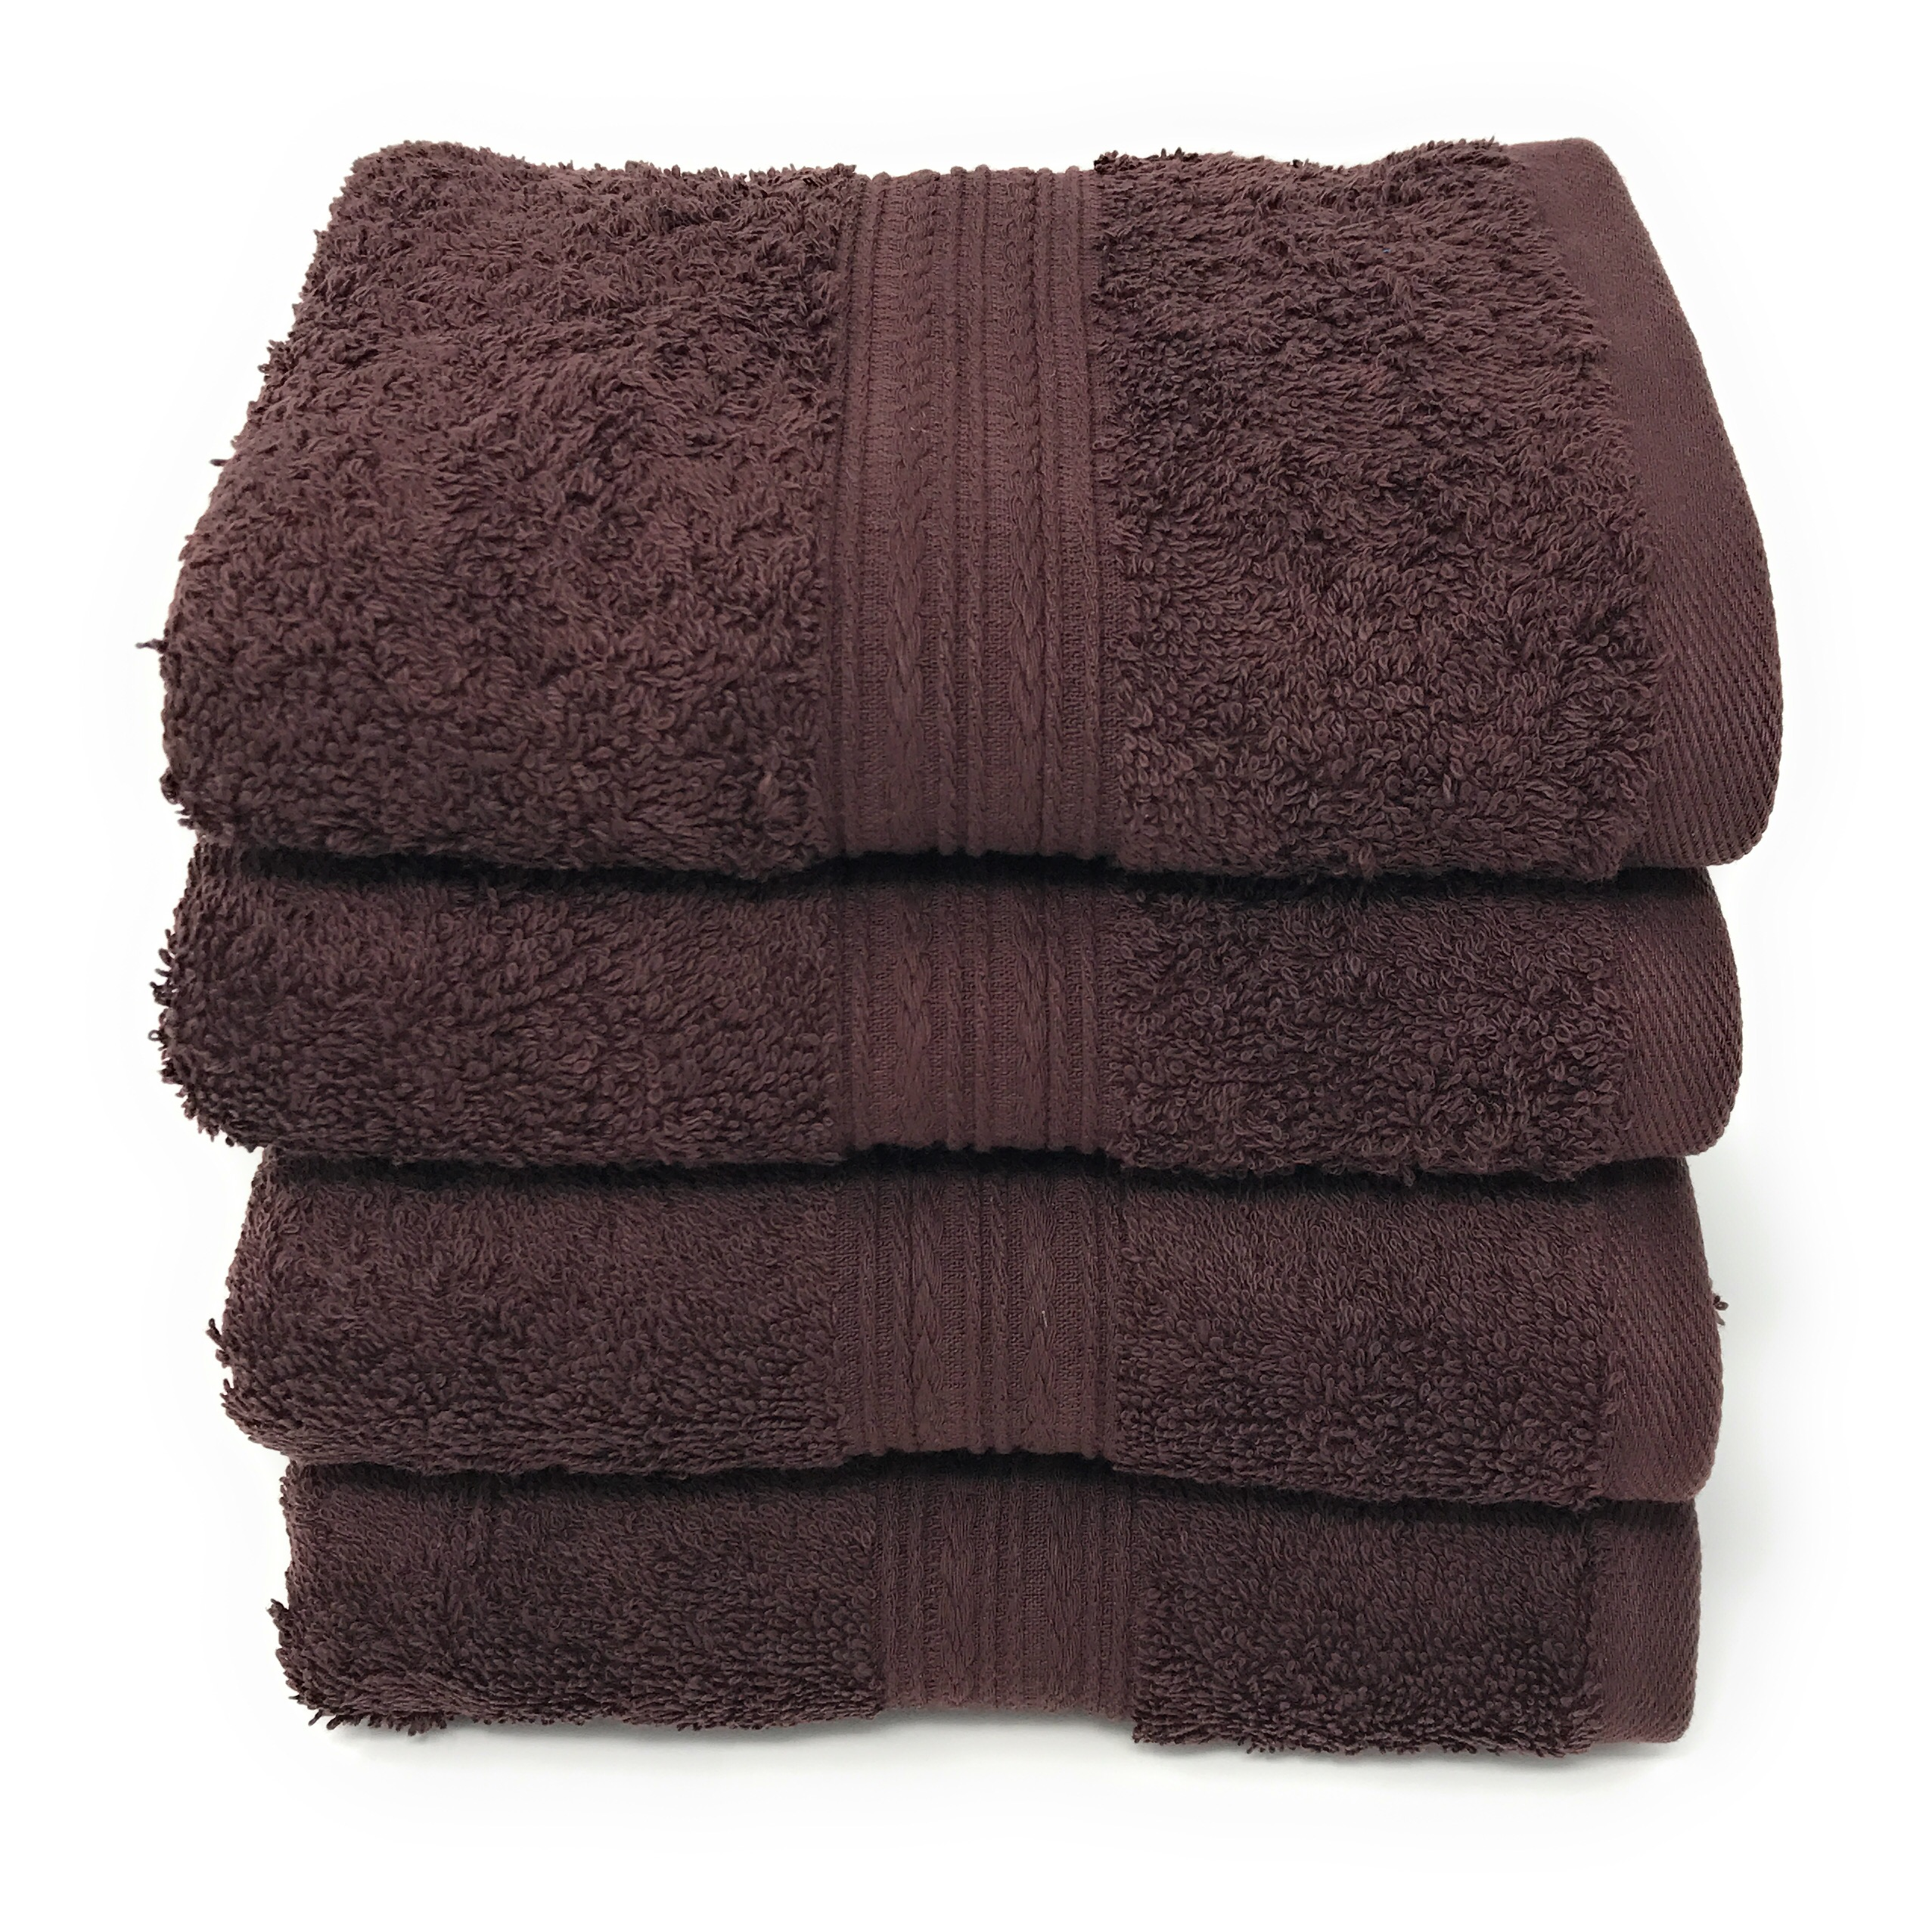 Goza Towels Cotton Hand Towels, (4 Pack, 16 x 28 inches) Dark Brown